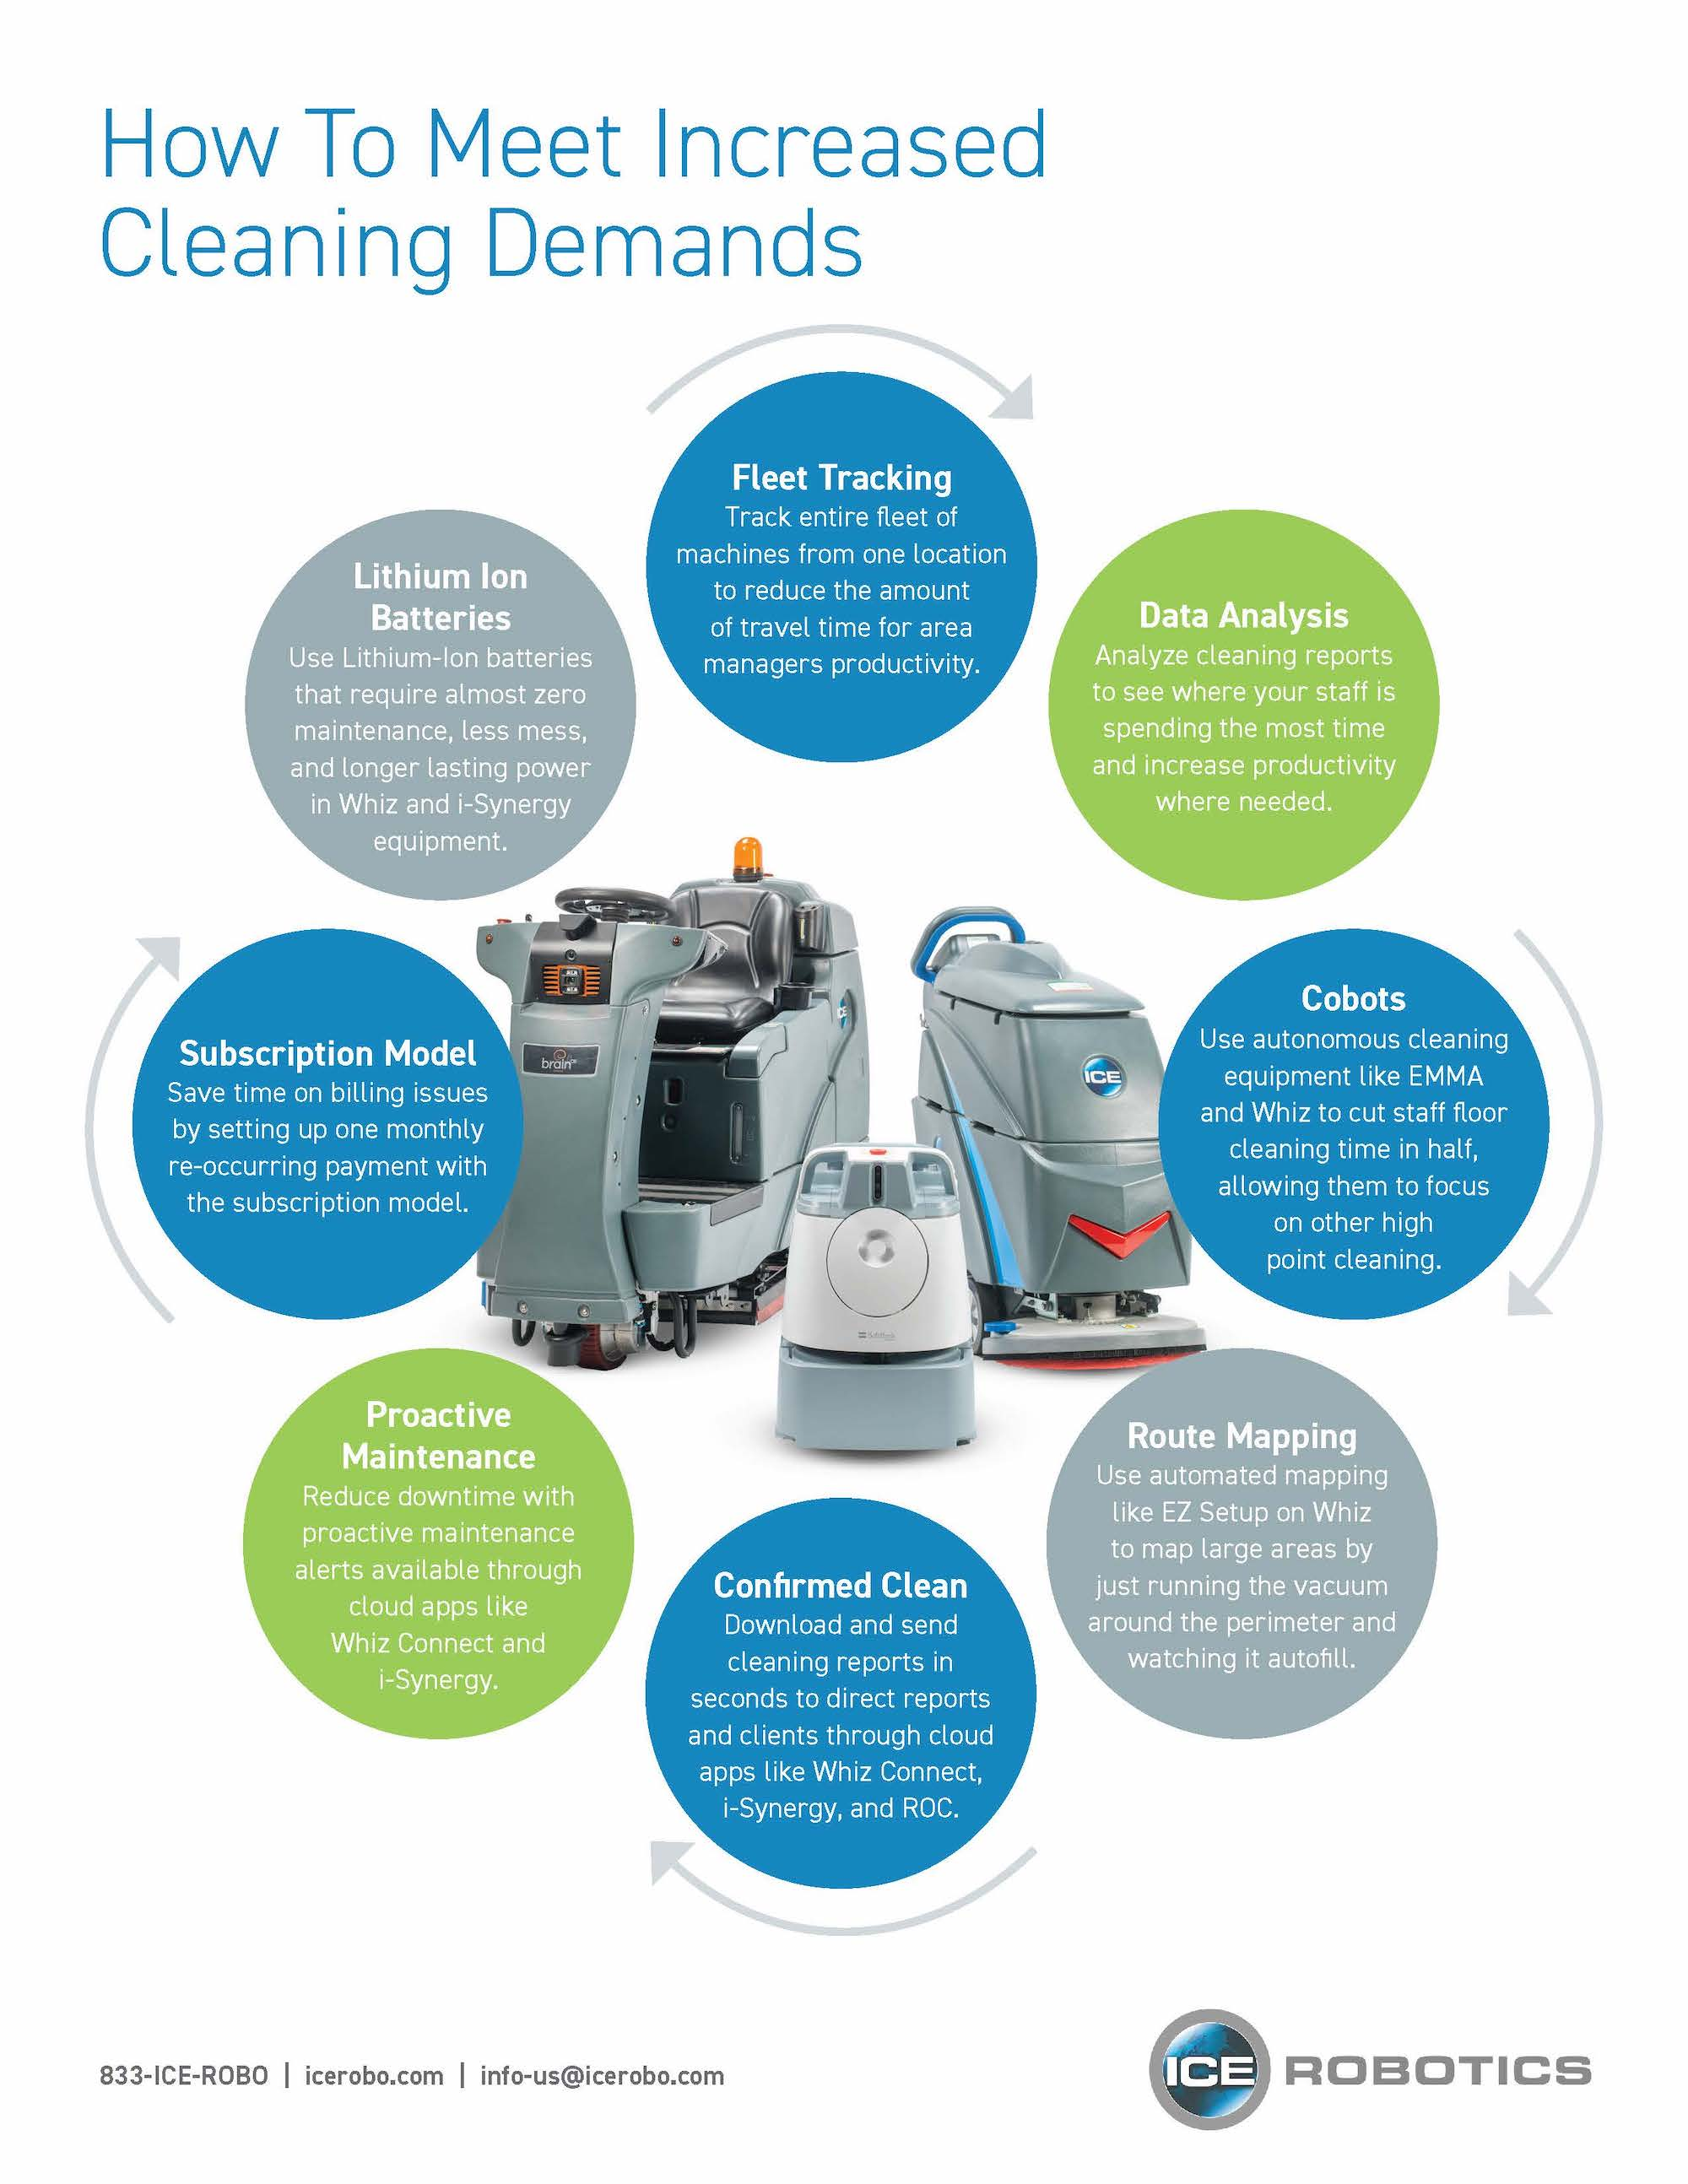 How to Meet Increased Cleaning Demands